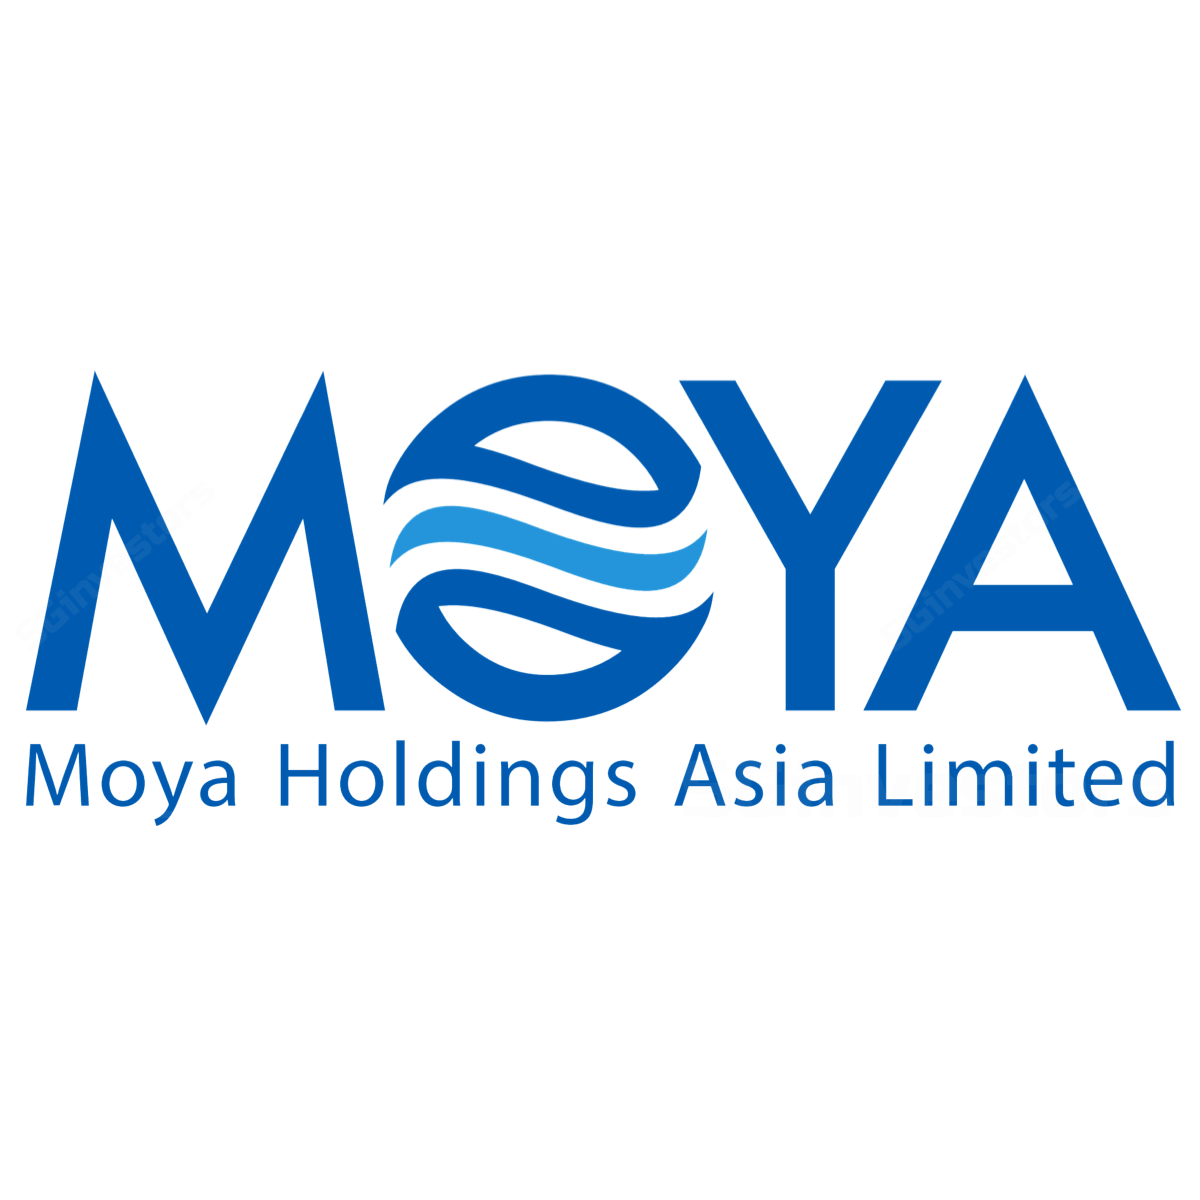 Moya Holdings Asia - RHB Invest 2018-03-16: Expansion Of Tangerang Water Supply Capacity